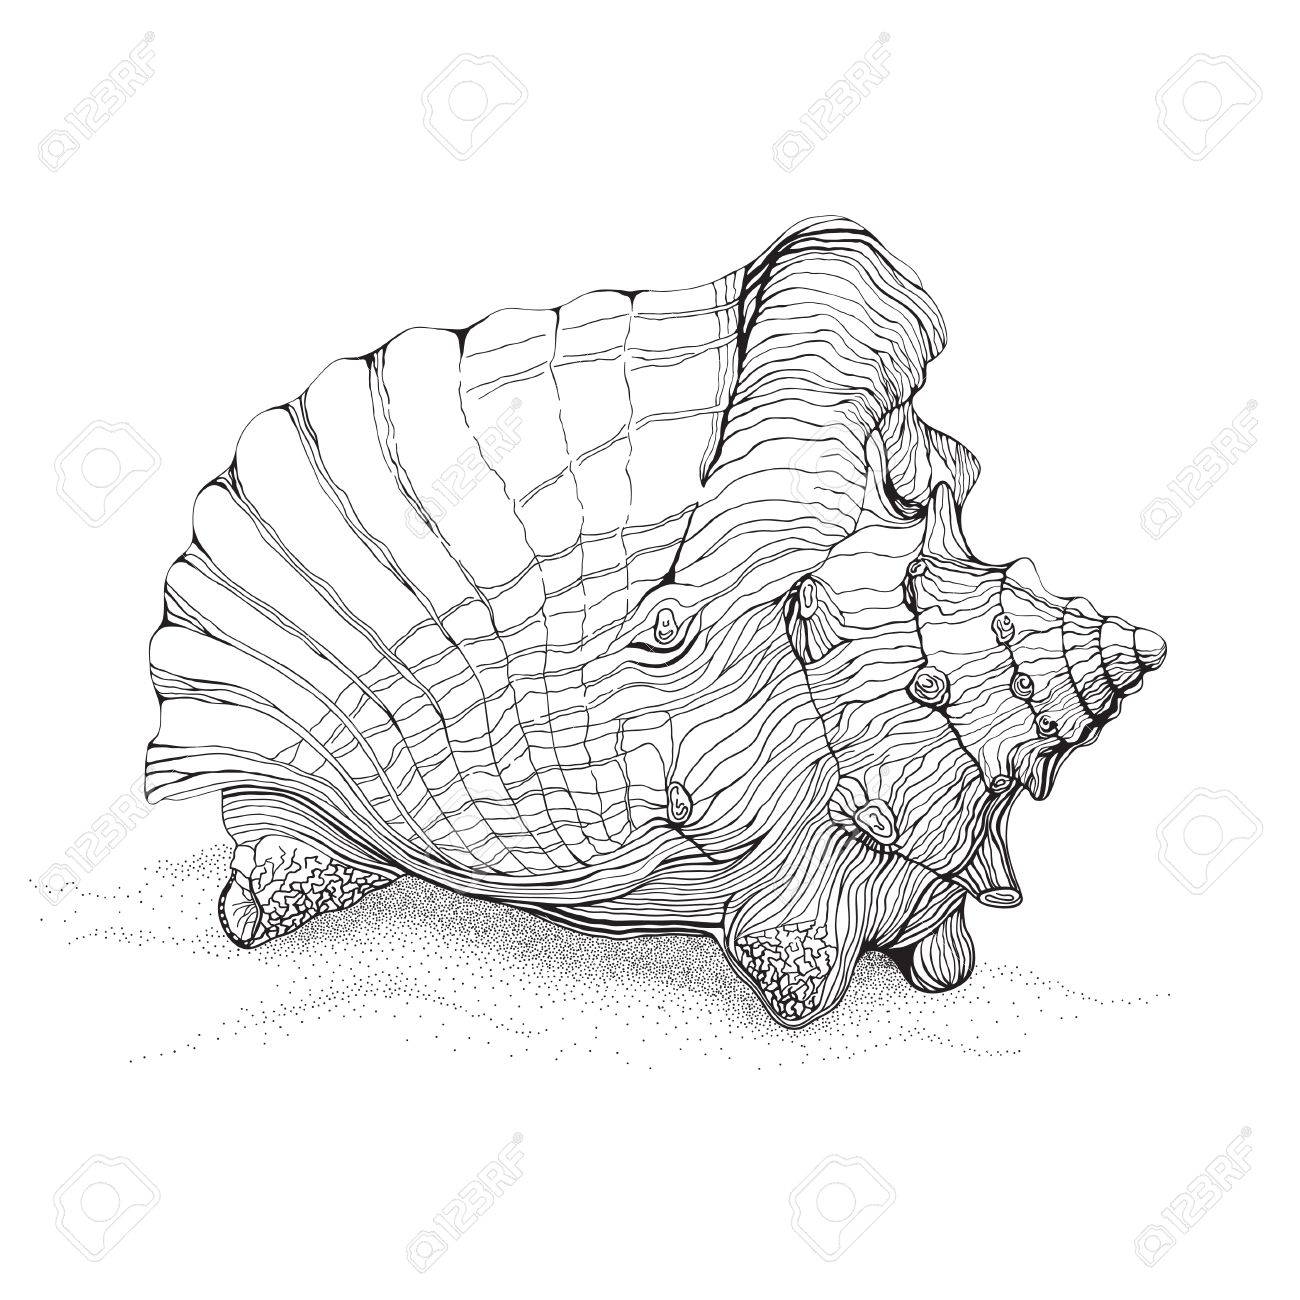 1300x1300 Conch Shell Drawing Decorative Pen And Ink Style Drawing Of Big